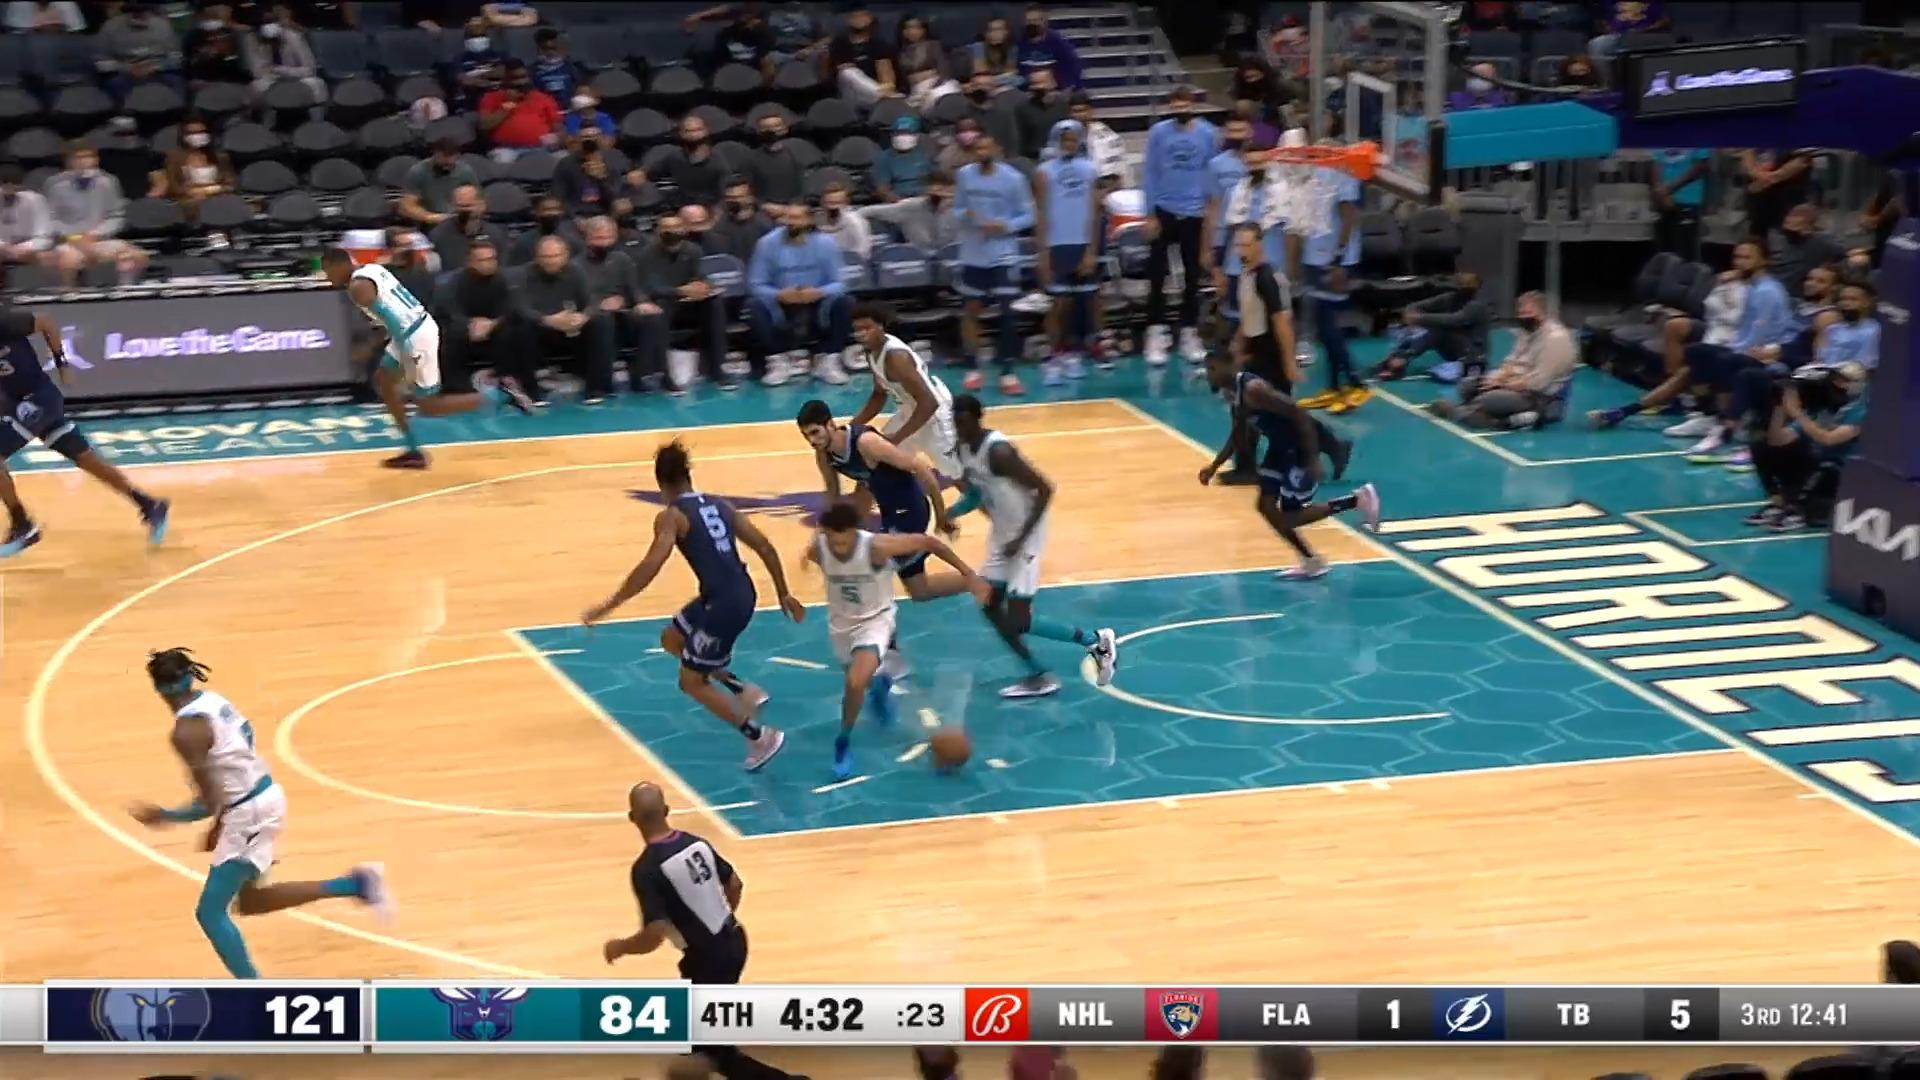 Bouknight with the poster slam!